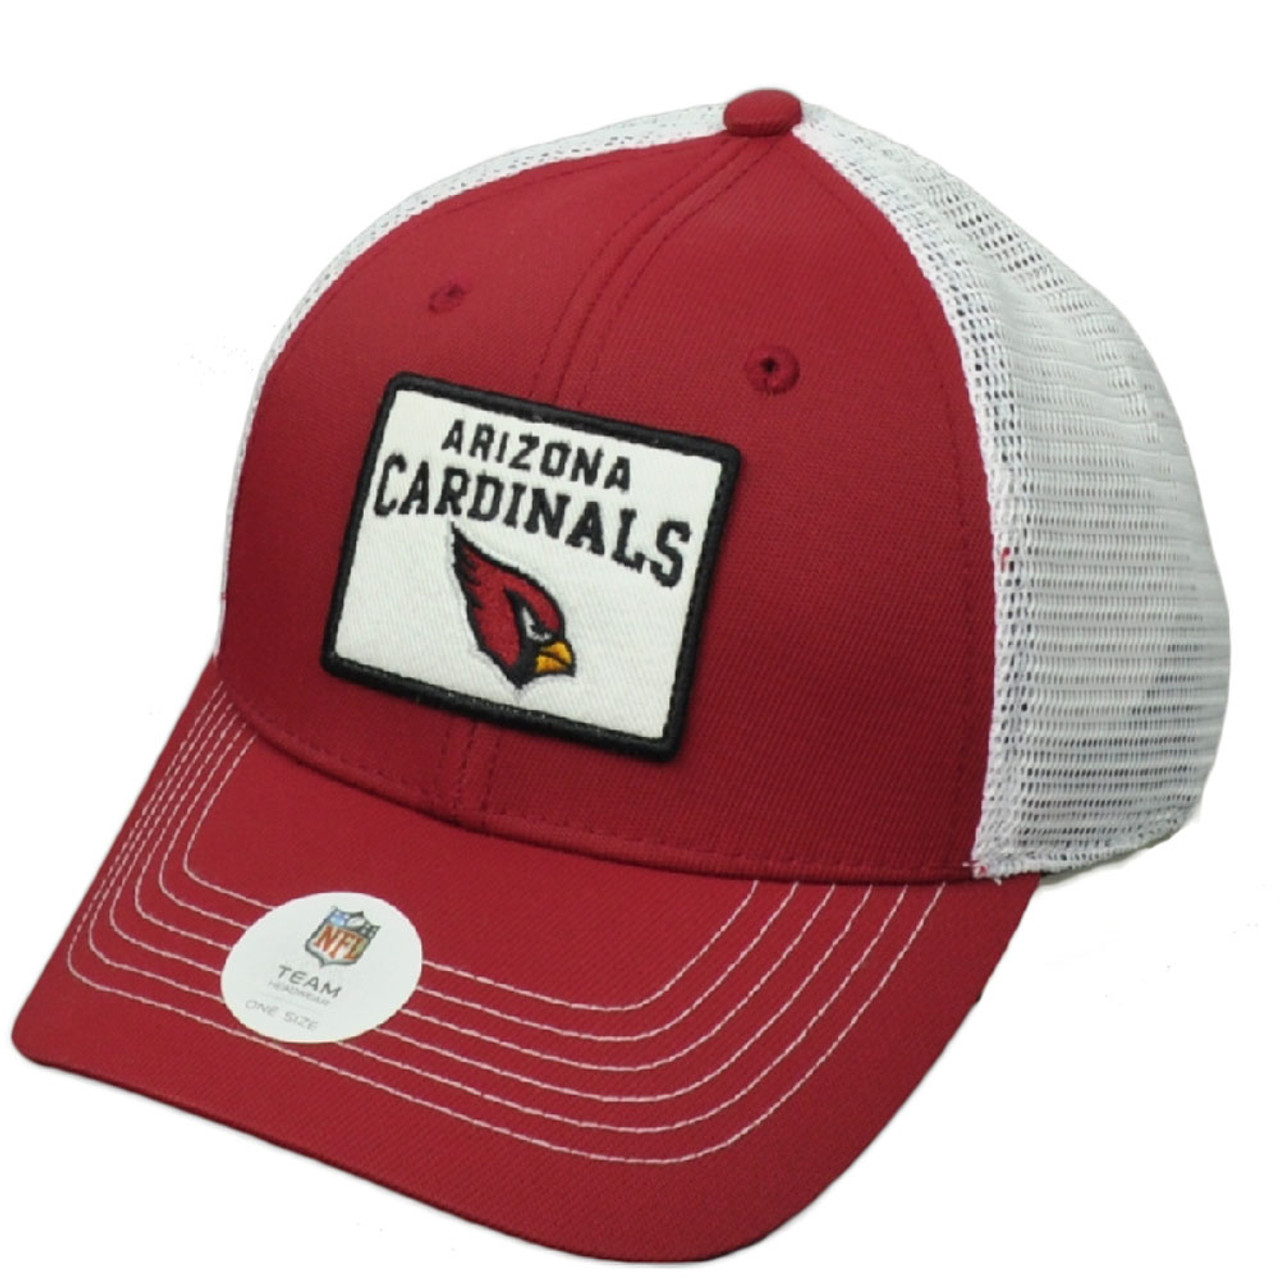 brand new e1213 7e7ae NFL Arizona Cardinals Burgundy White Mesh Snapback Hat Cap Trucker Curved  Bill